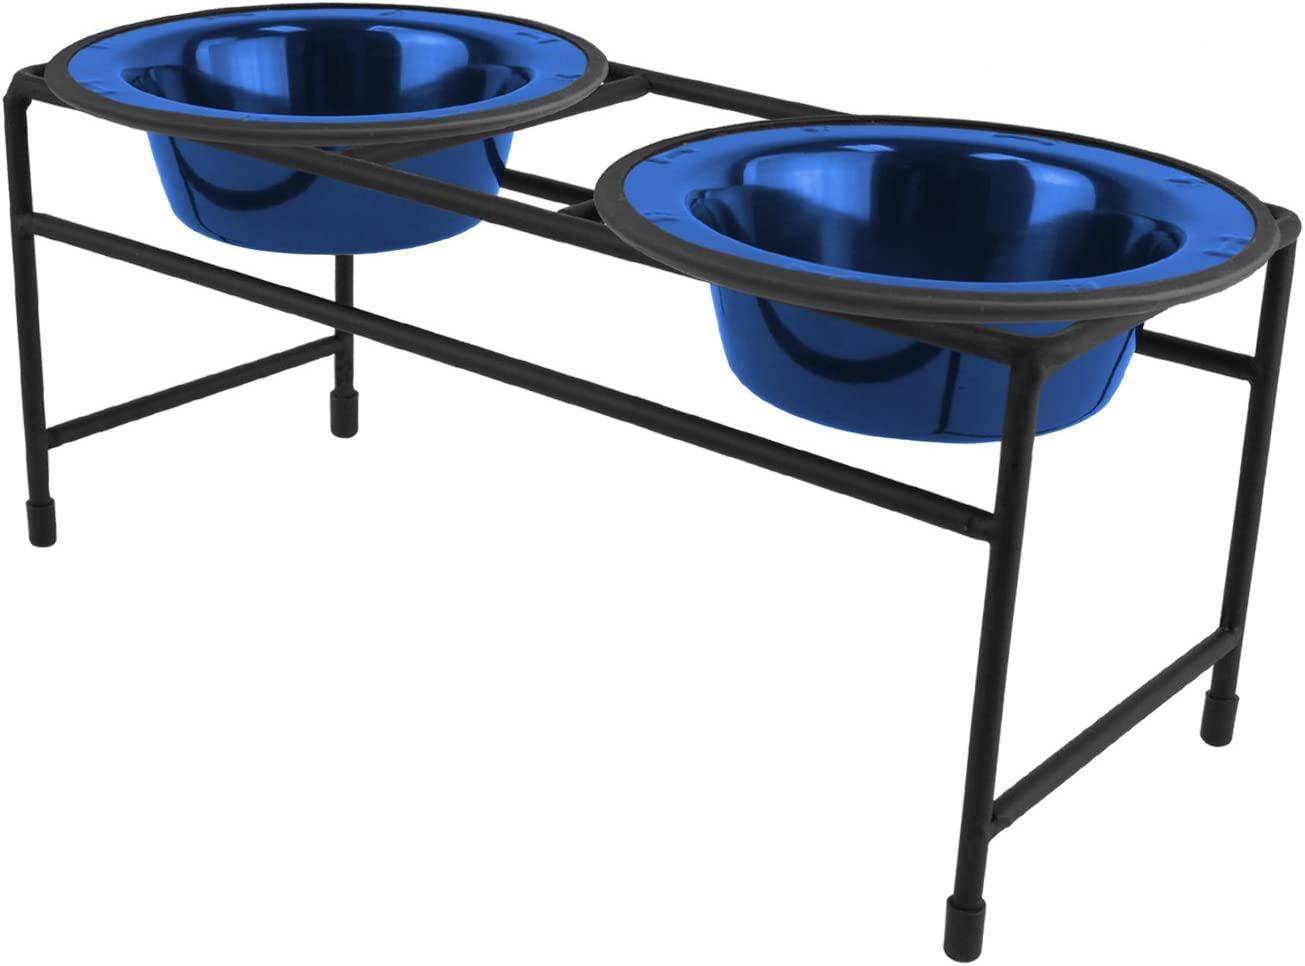 Platinum Pets Double Diner Feeder with Stainless Steel Cat Bowls, 6 oz, Blue